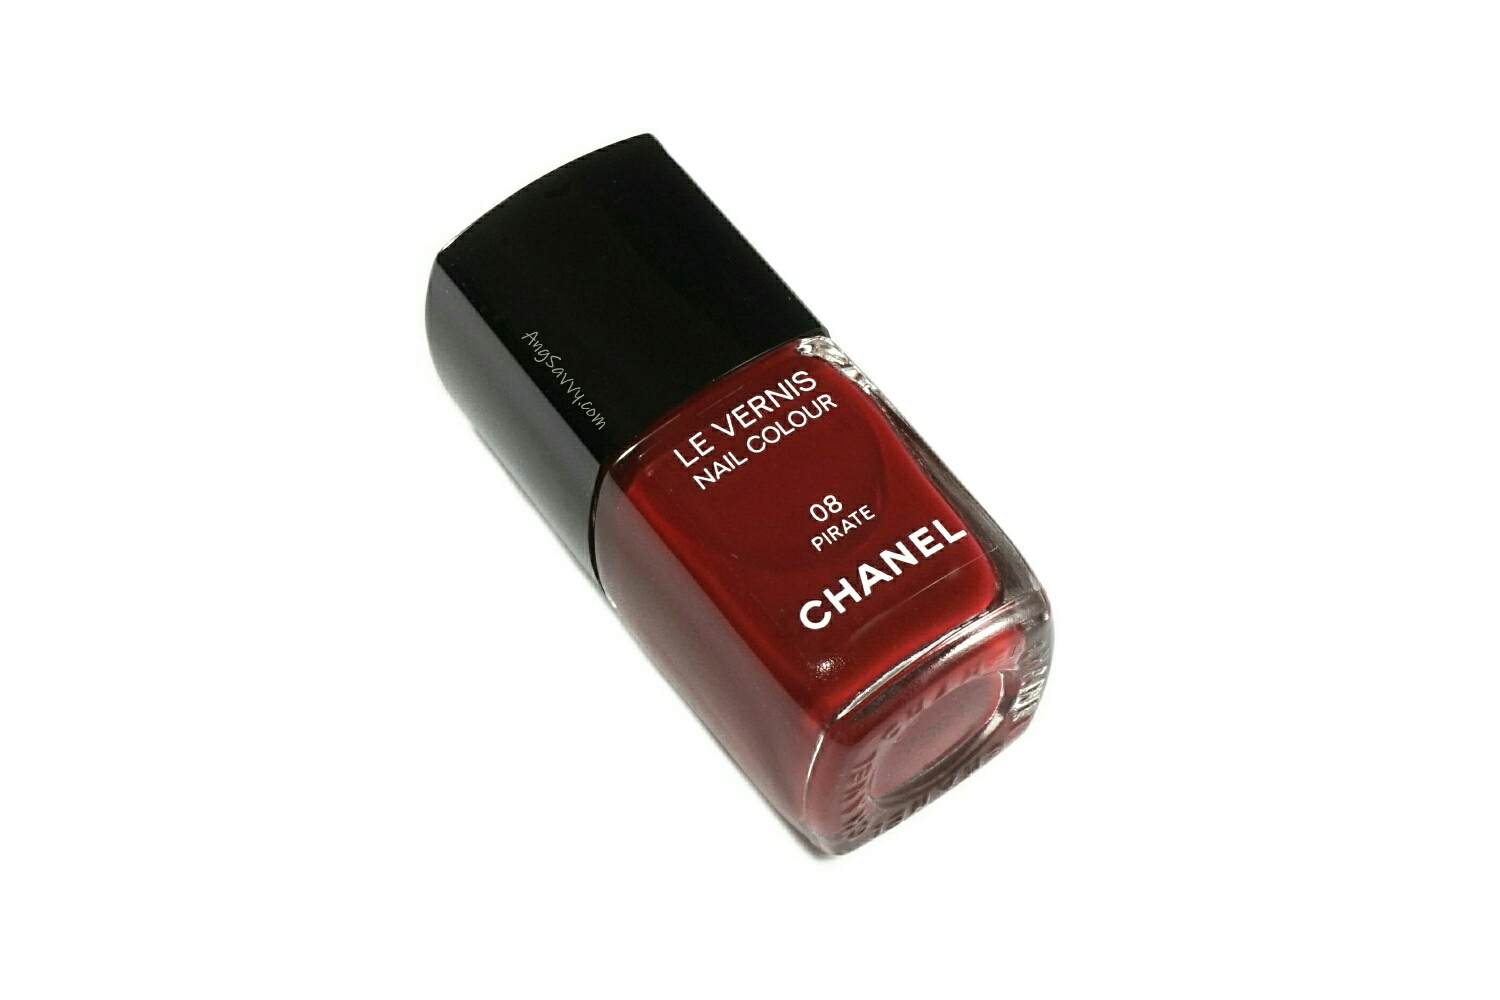 Chanel Pirate Nail Polish